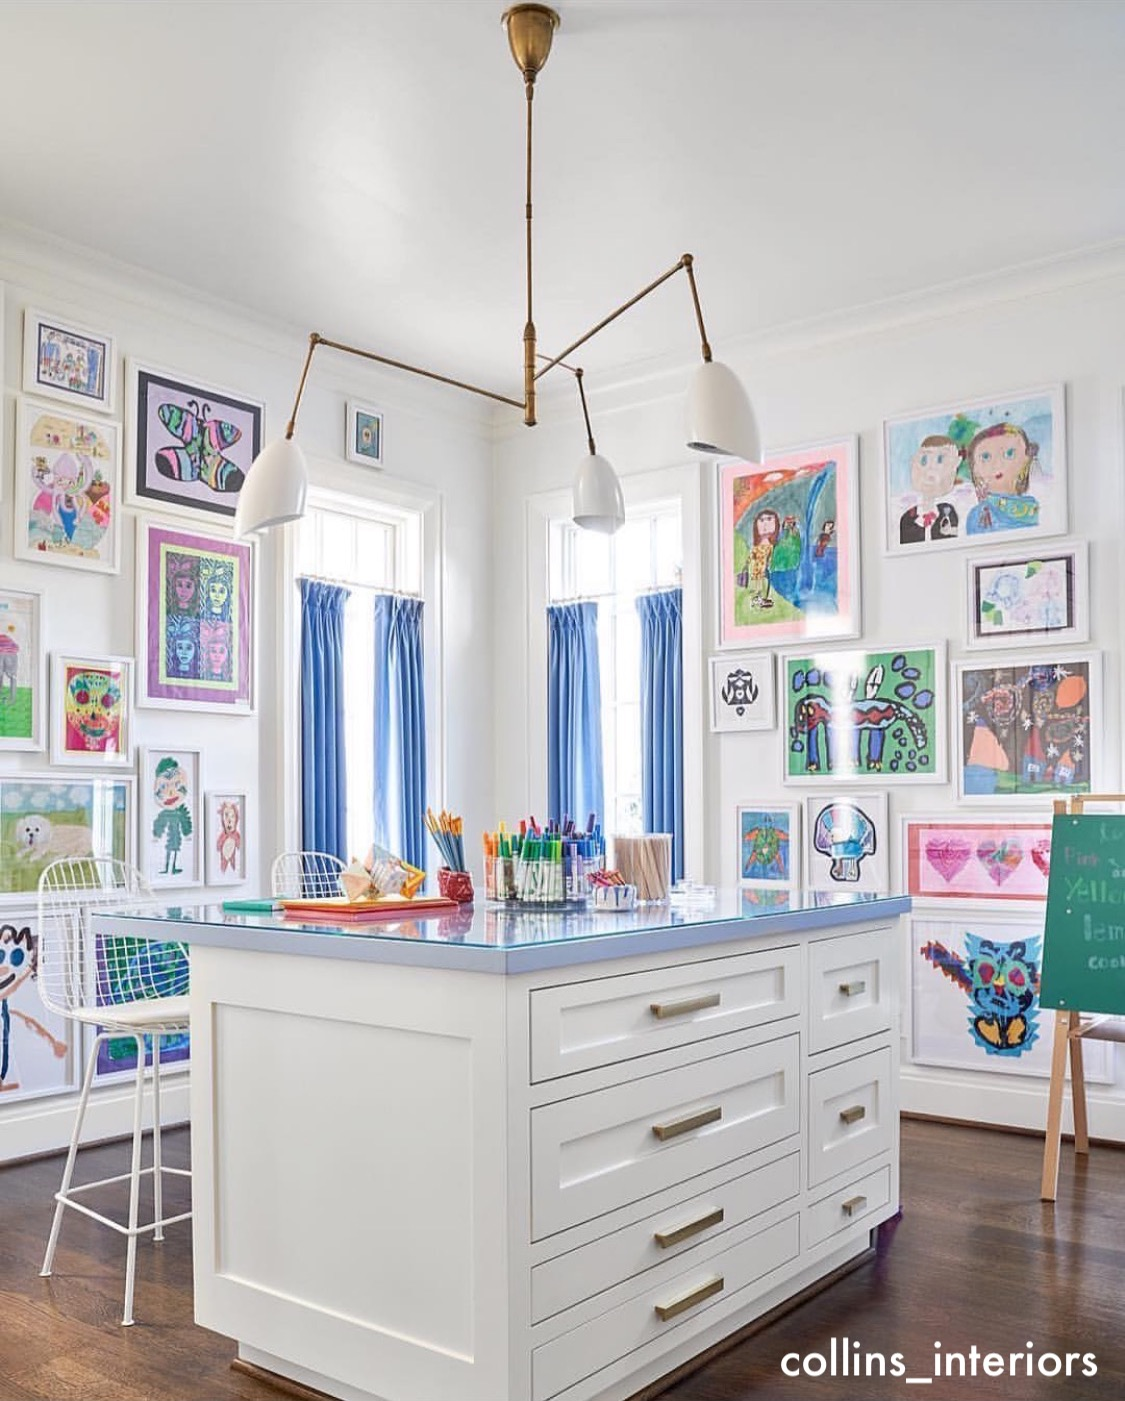 collins_interiors-periwinkle blue-kids-desk-craft-rooms-gallery-walls-littleblackdomicile